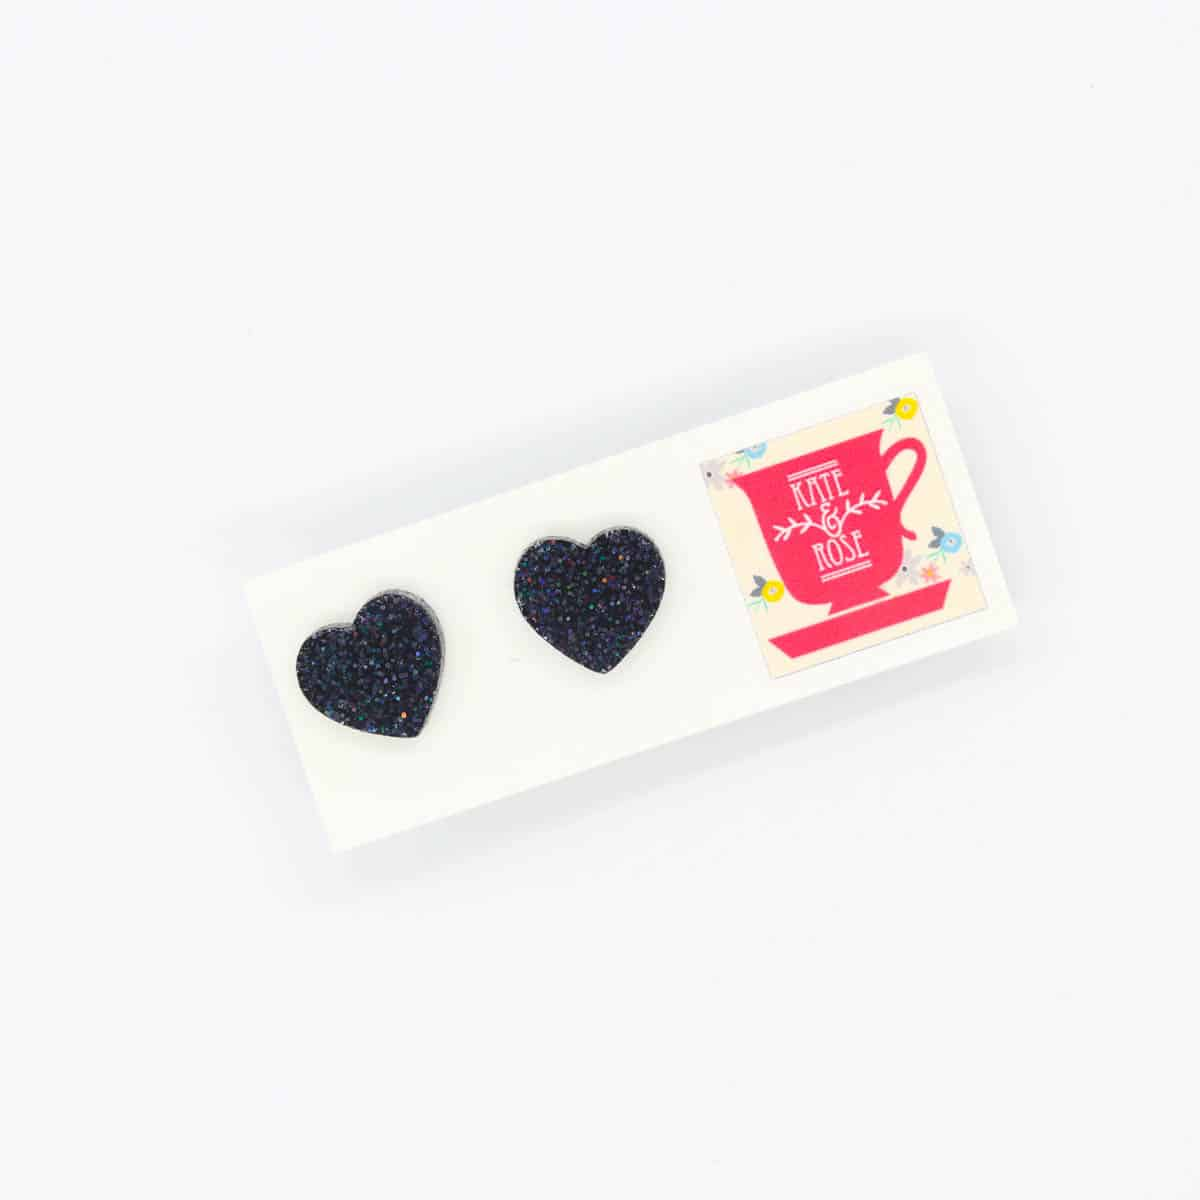 Black Acrylic Glitter Heart Studs Earrings By Kate And Rose $14.95